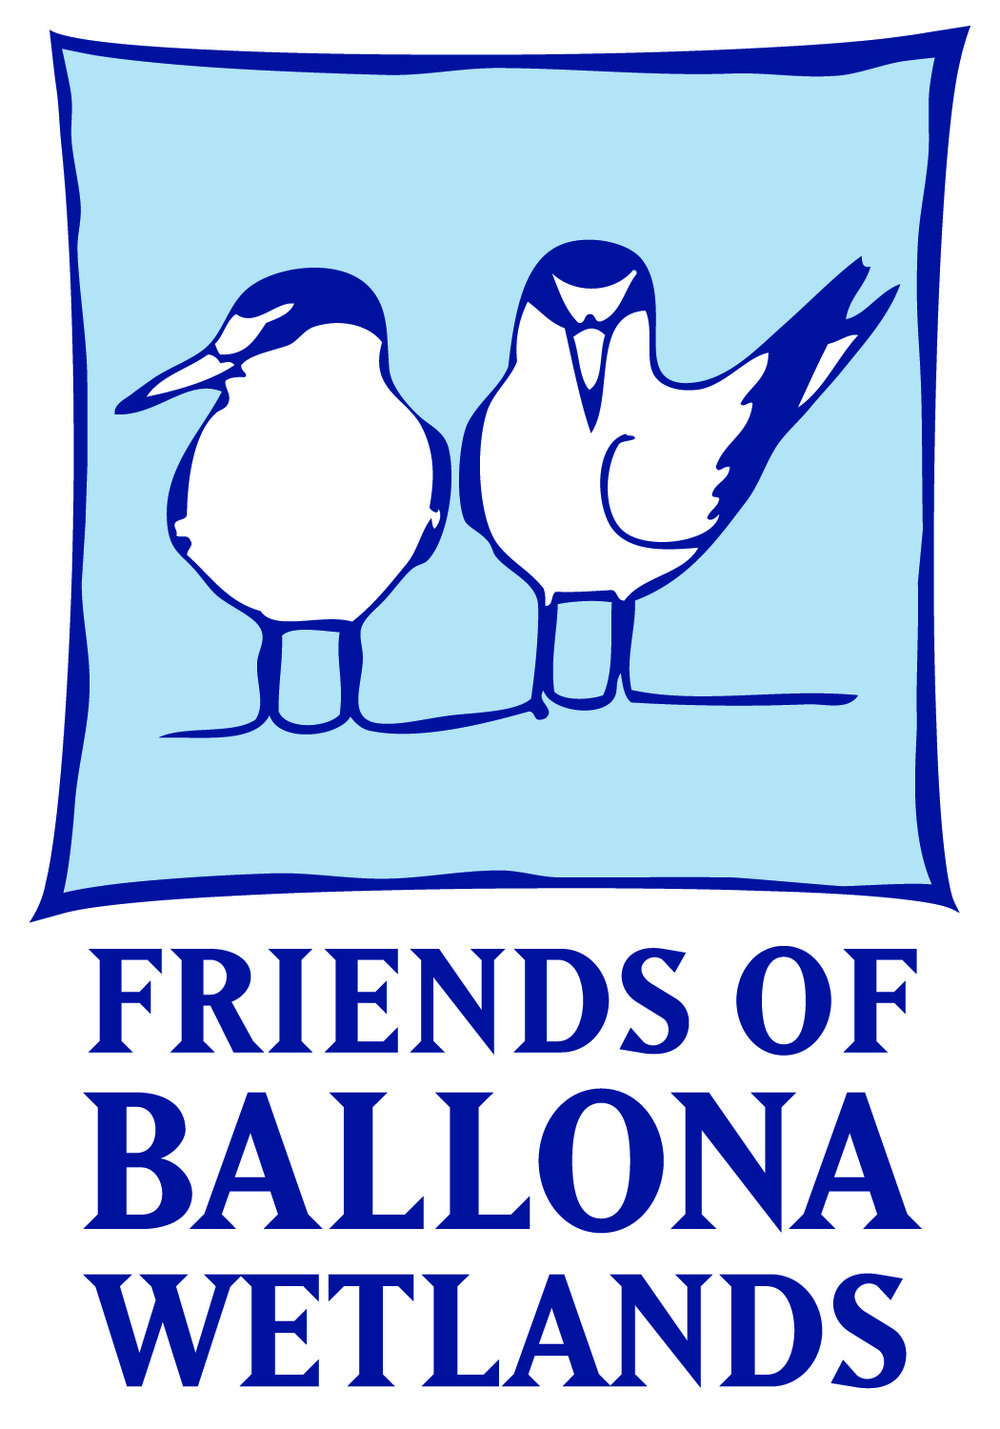 friends-of-ballona-wetlands-logo.jpg